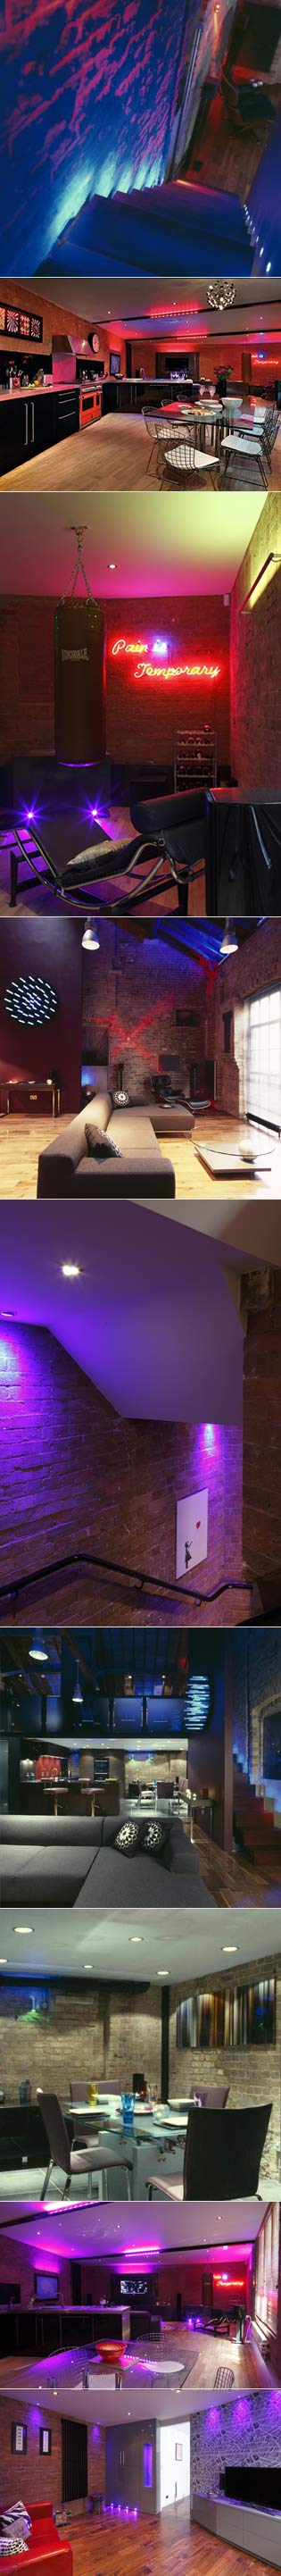 London lighting designers